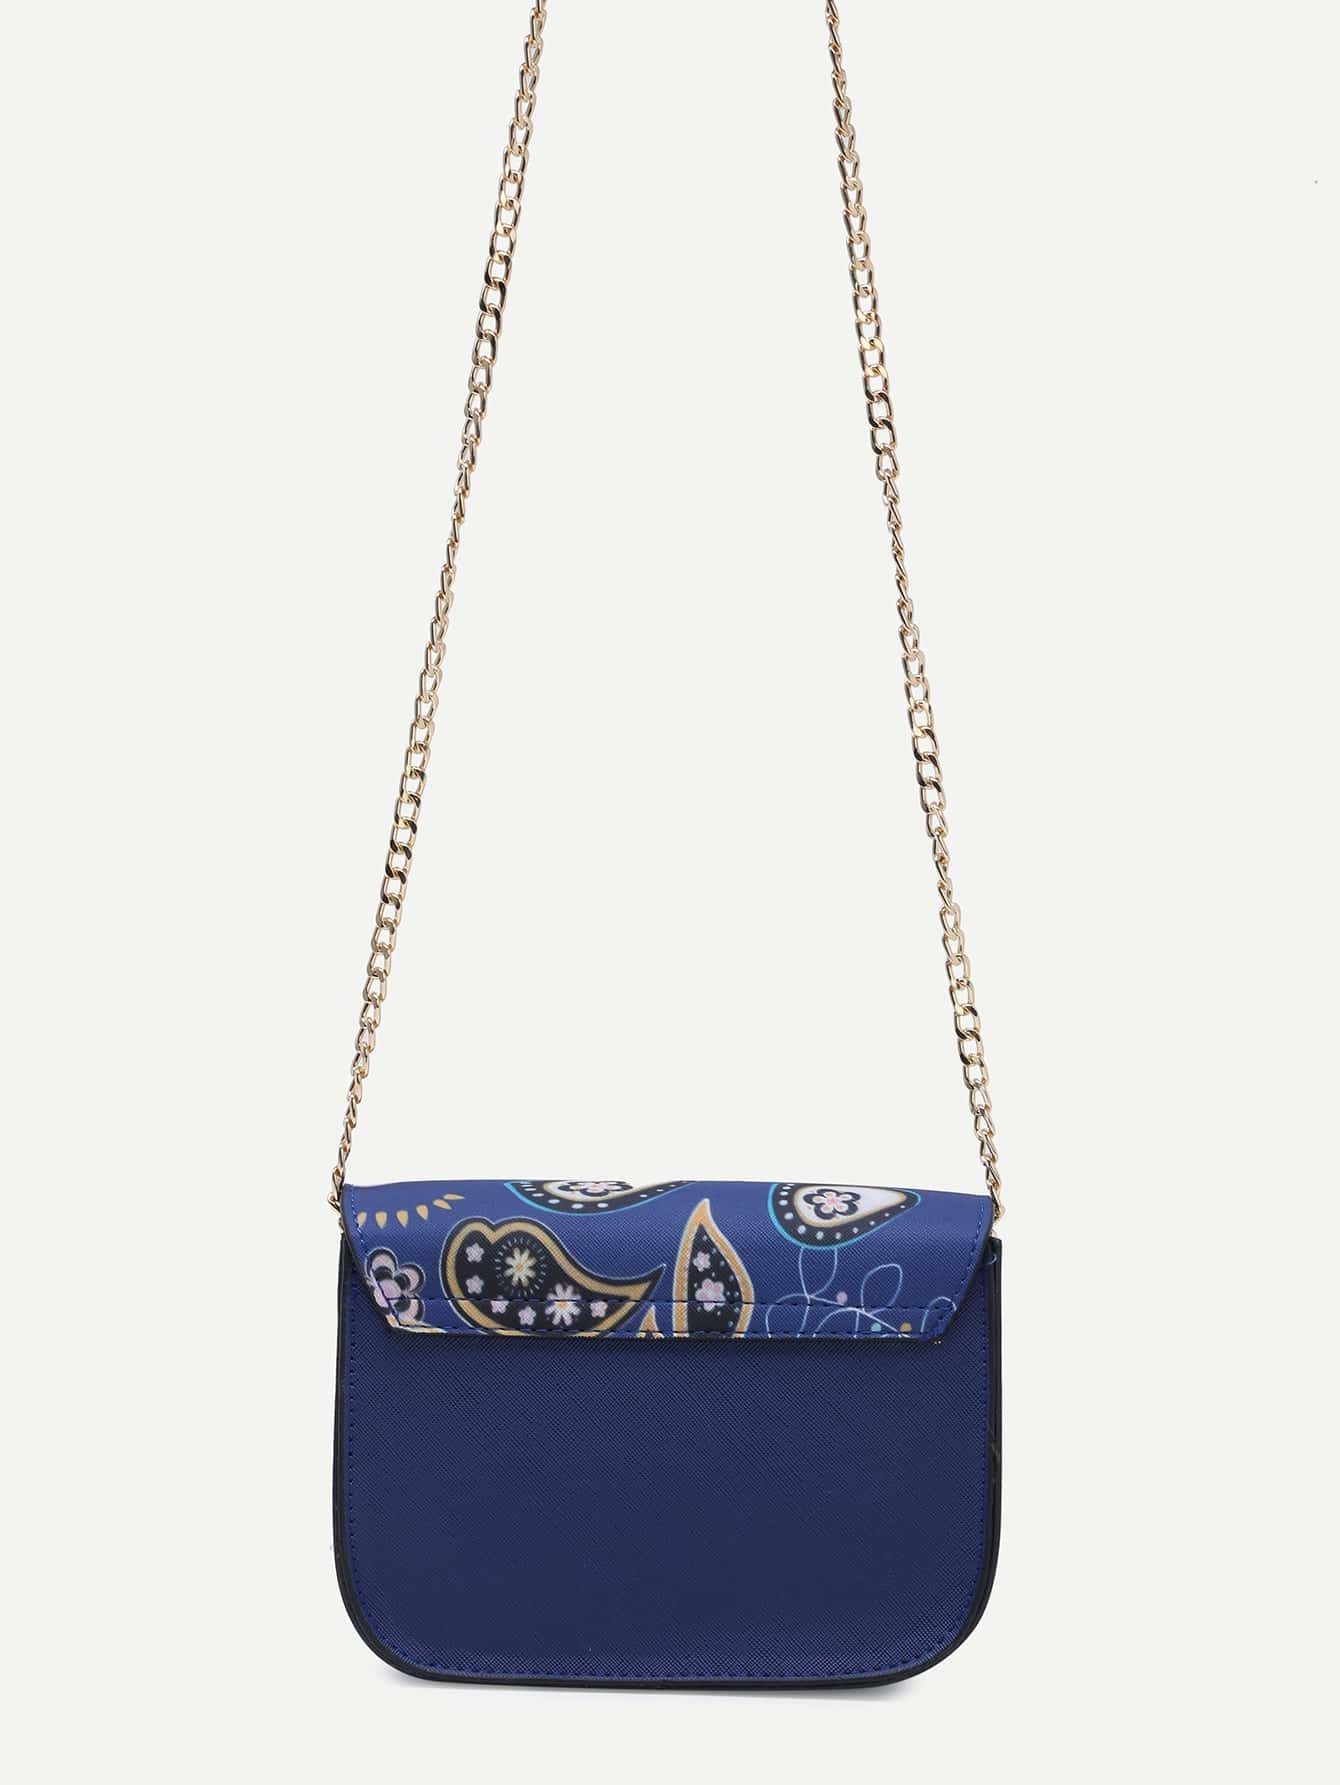 Blue Floral Print Crossbody Bag With Chain Strap -SheIn(Sheinside)